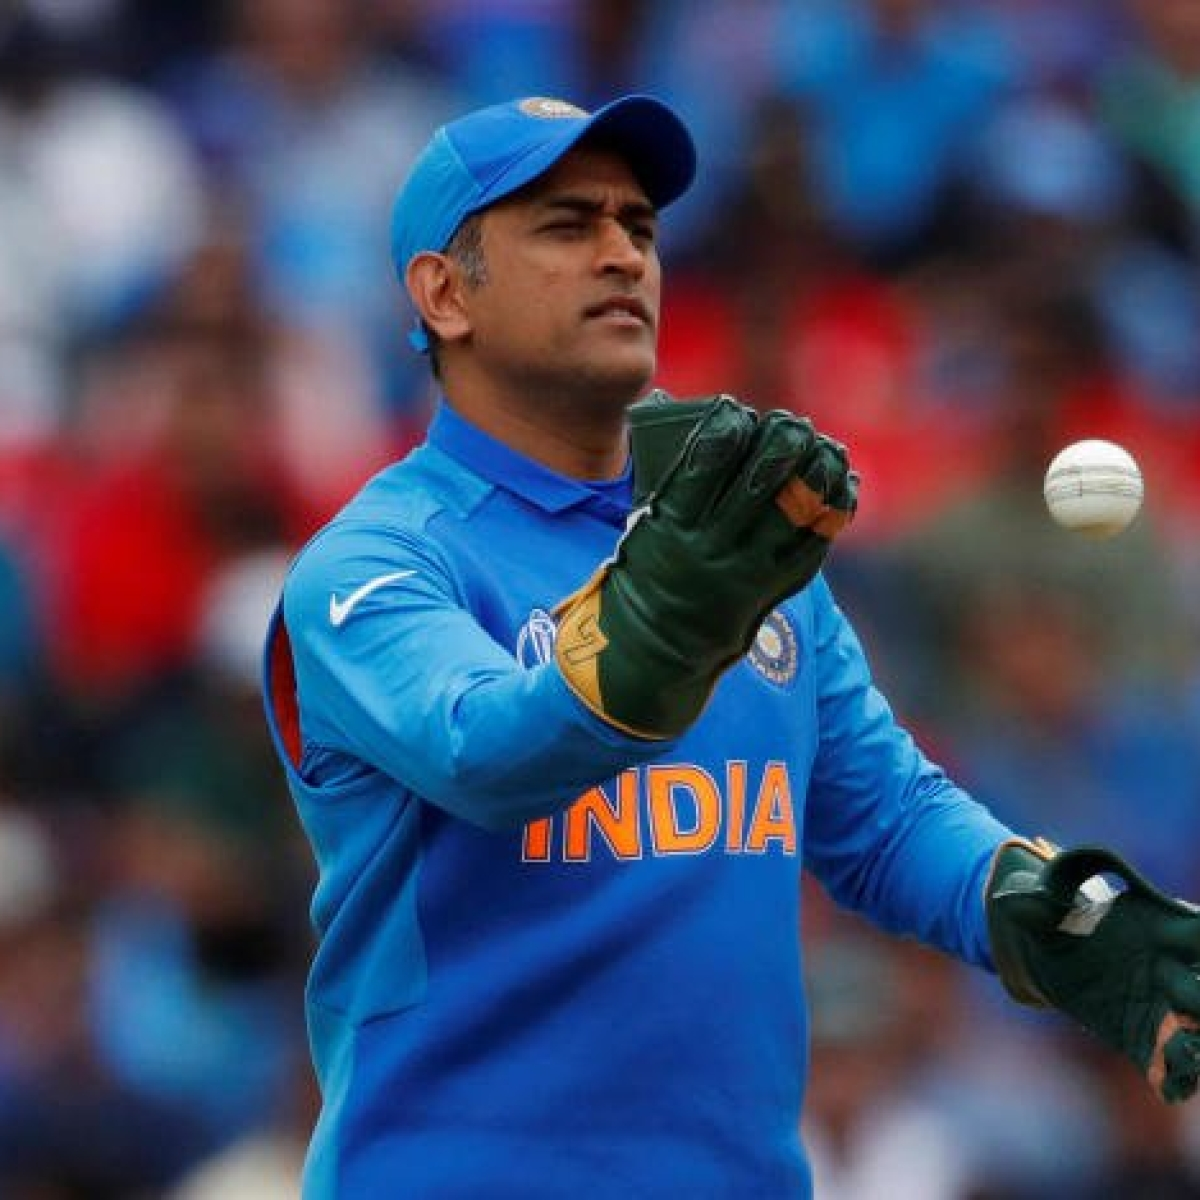 'Miss you Dhoni': MSD trends on Twitter after India's loss to New Zealand